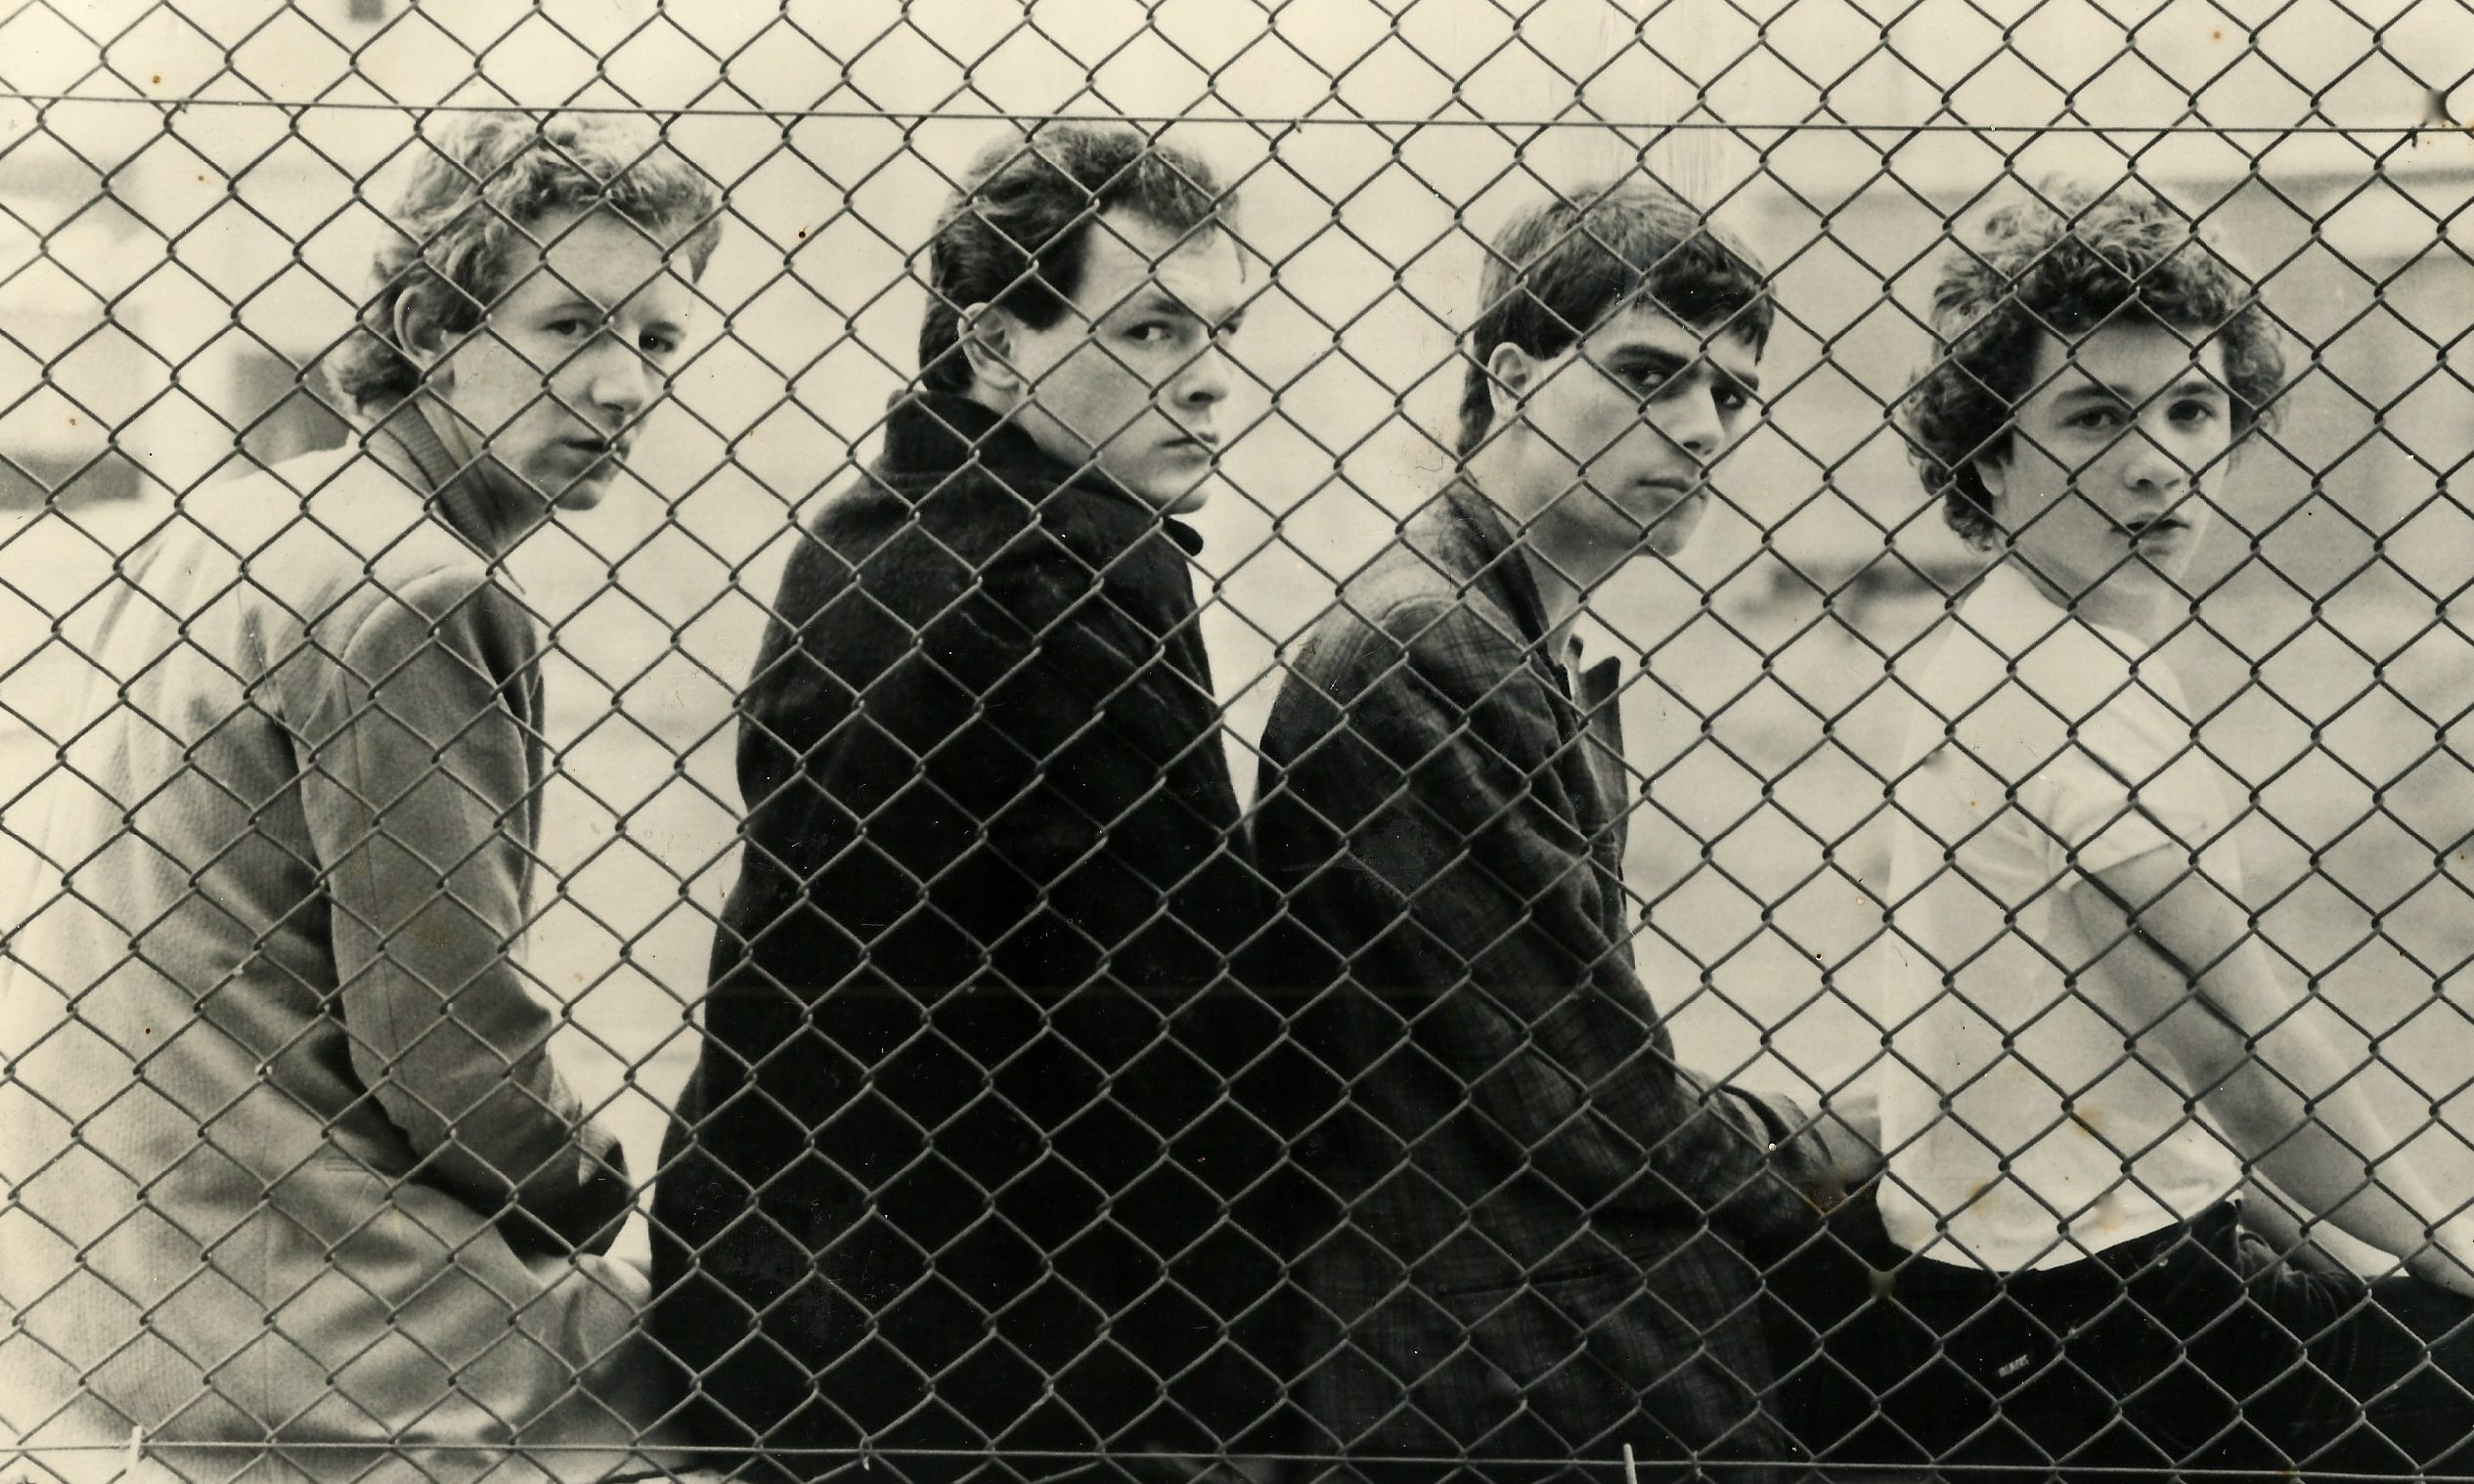 The Associates's first ever promo shot, taken in 1978.